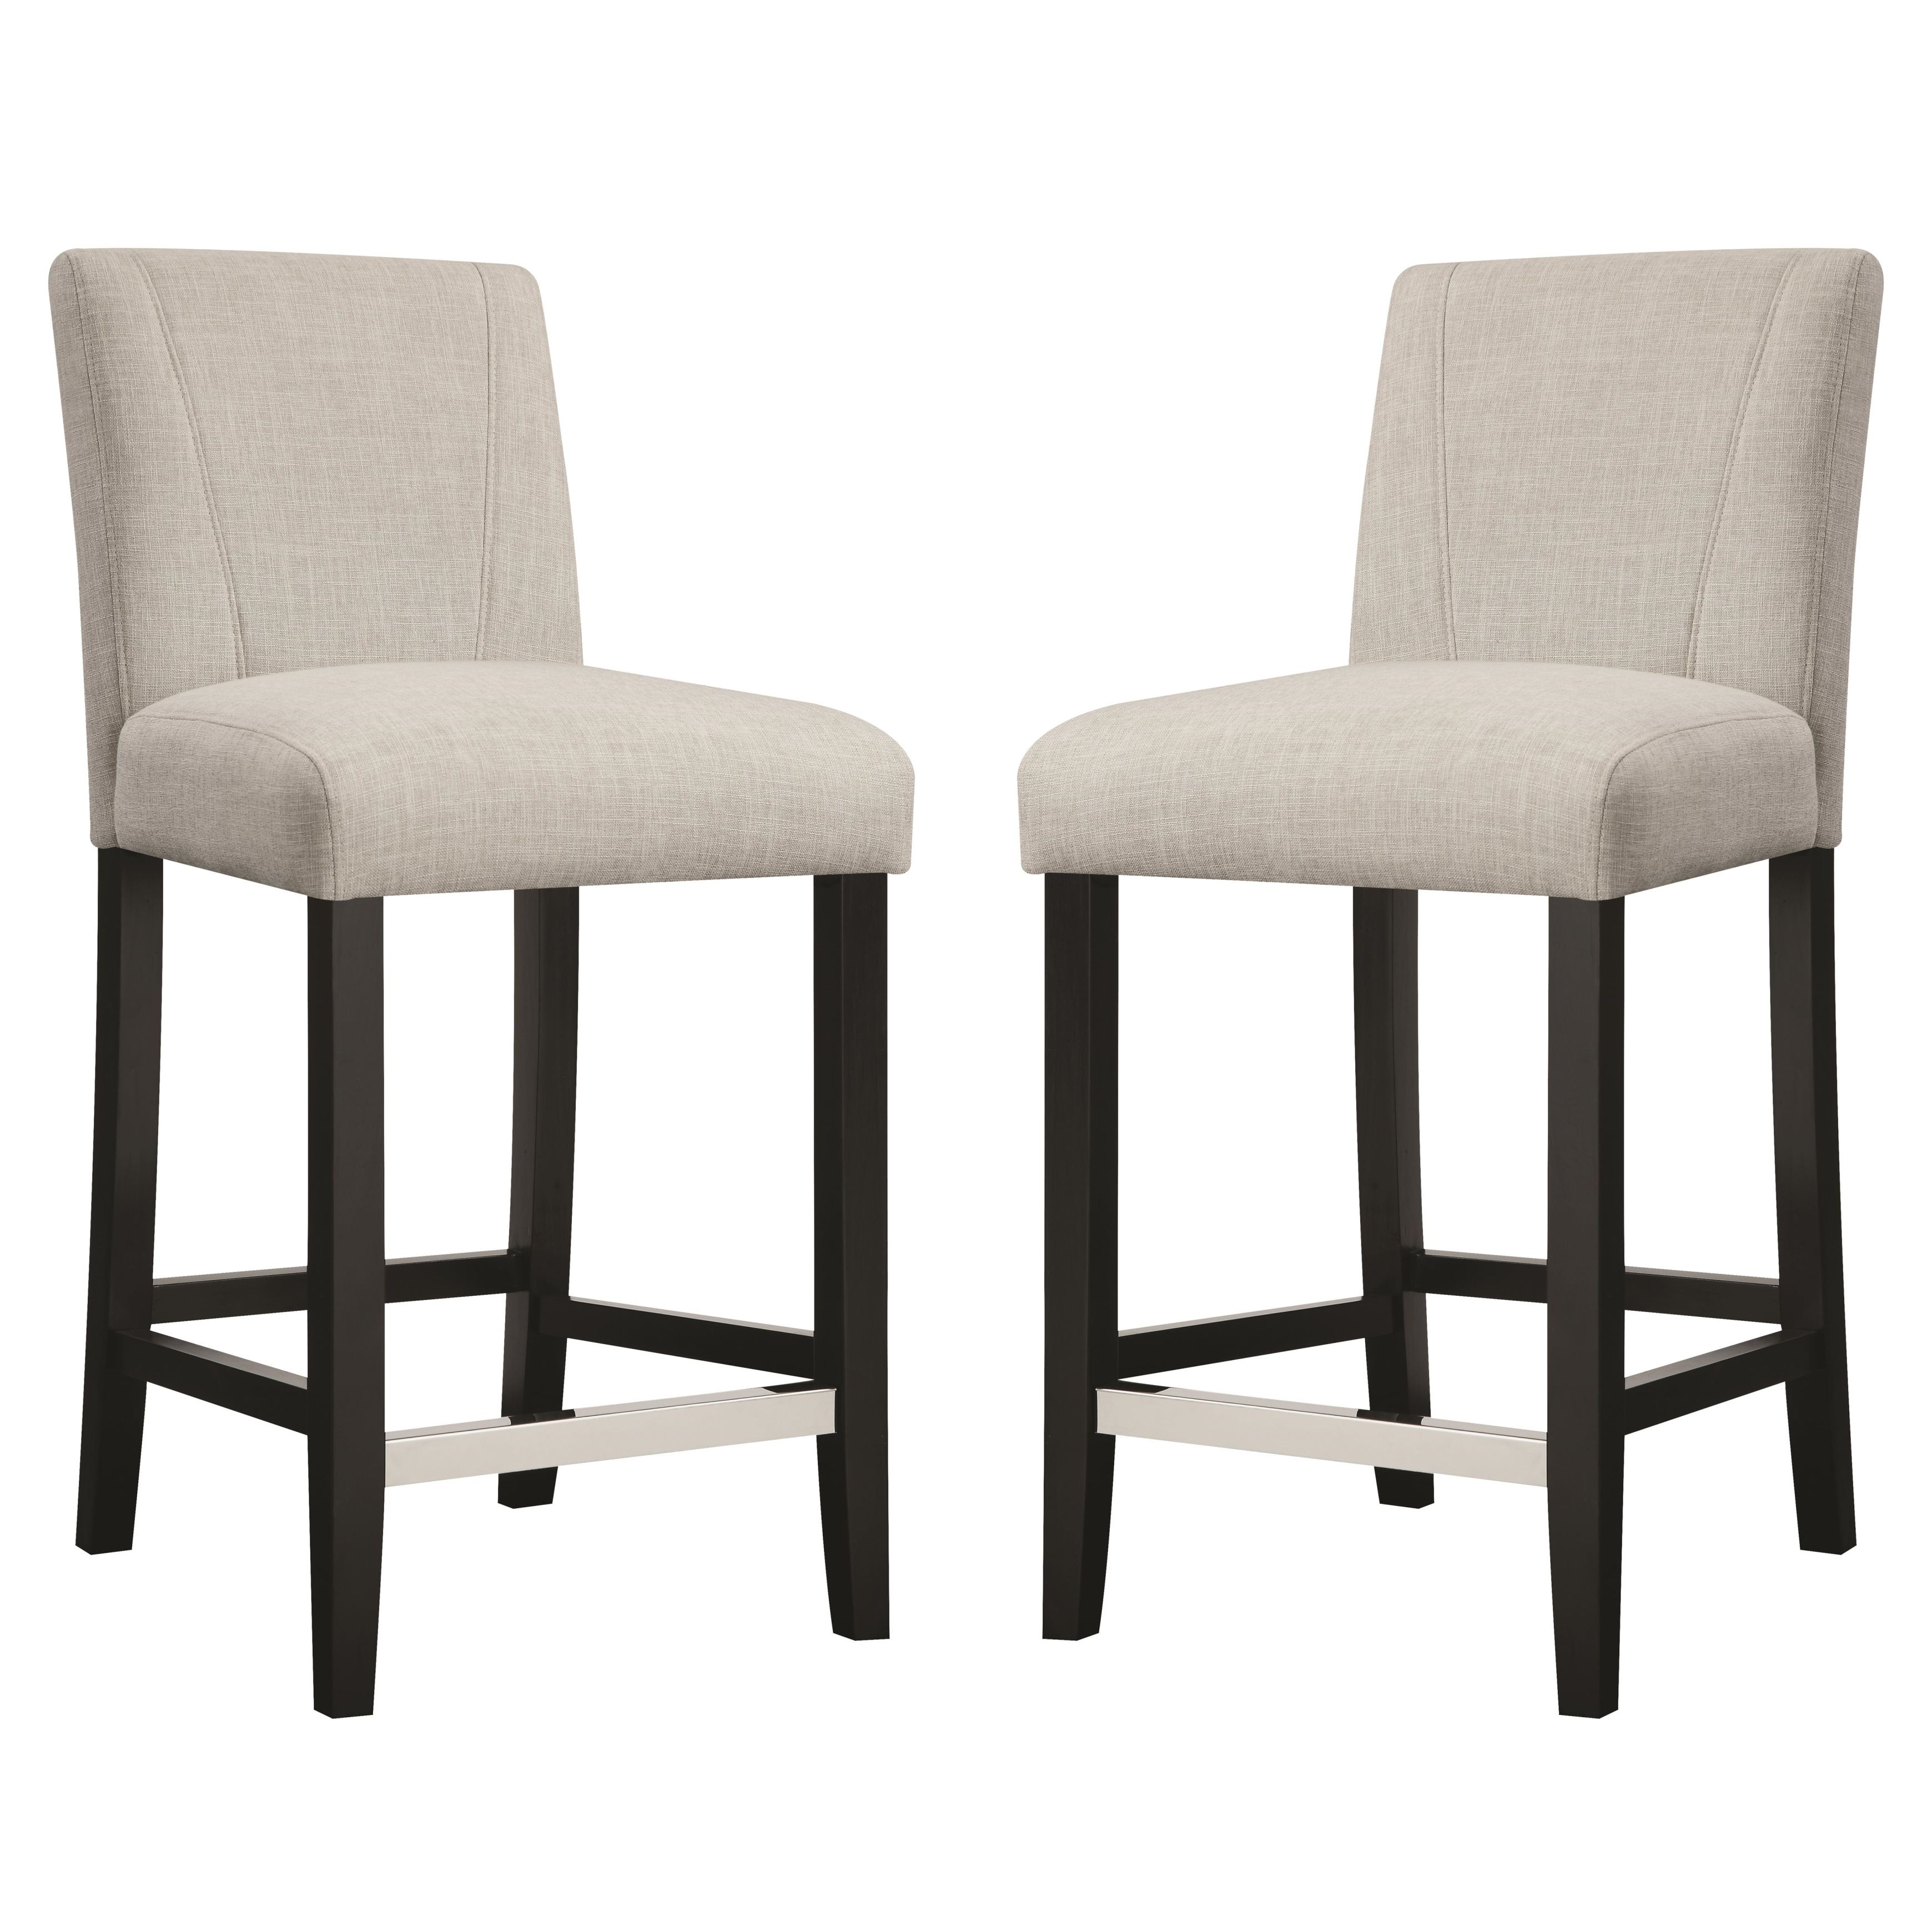 Cool Ramiro Fabric Upholstered Counter Height Stools Set Of 2 Gmtry Best Dining Table And Chair Ideas Images Gmtryco